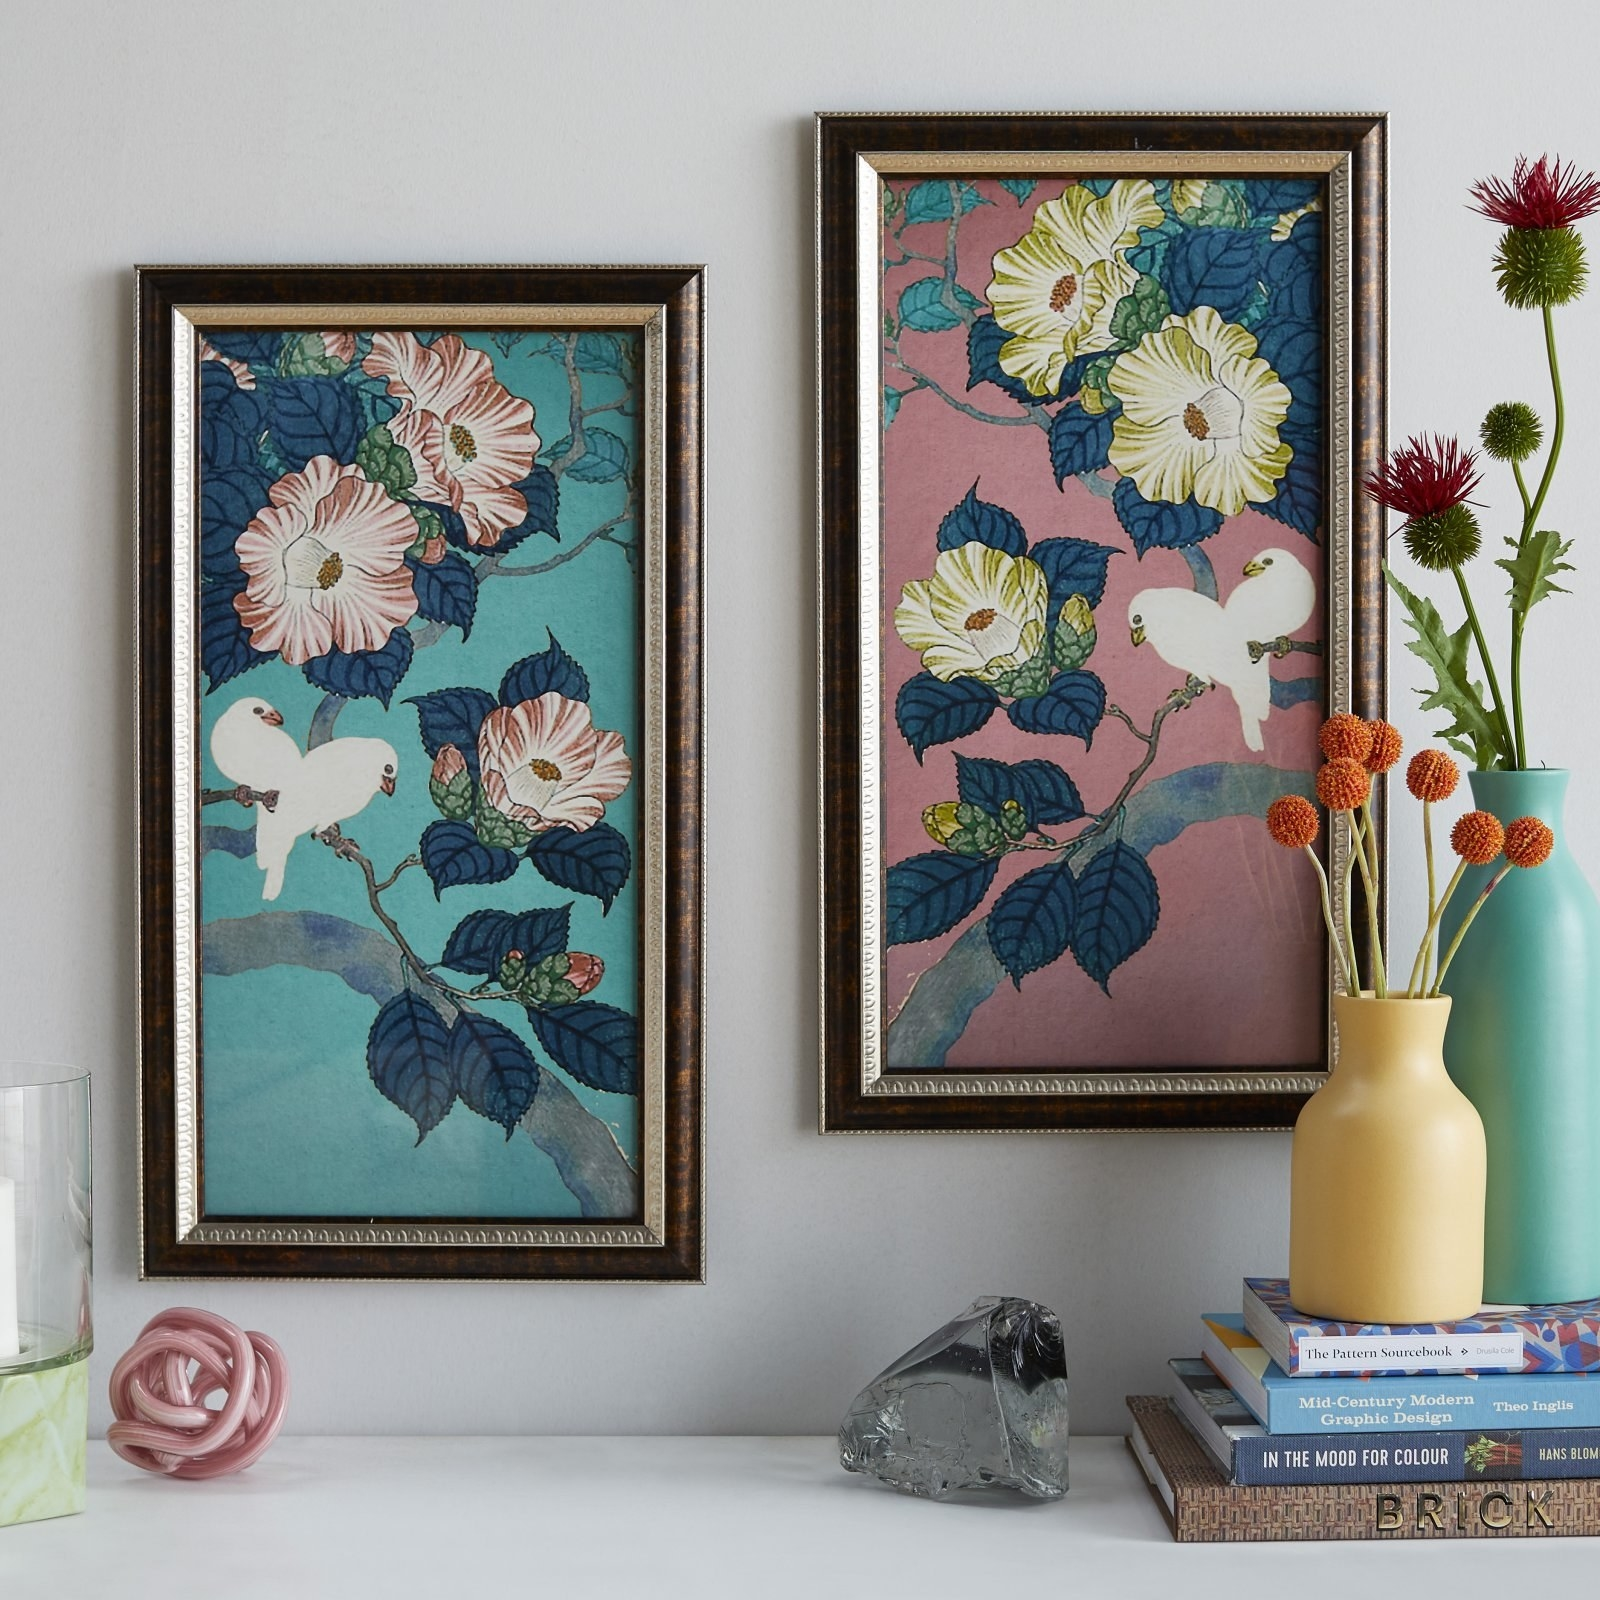 The two paintings of birds and flowers, one with blue backdrop and one with pink